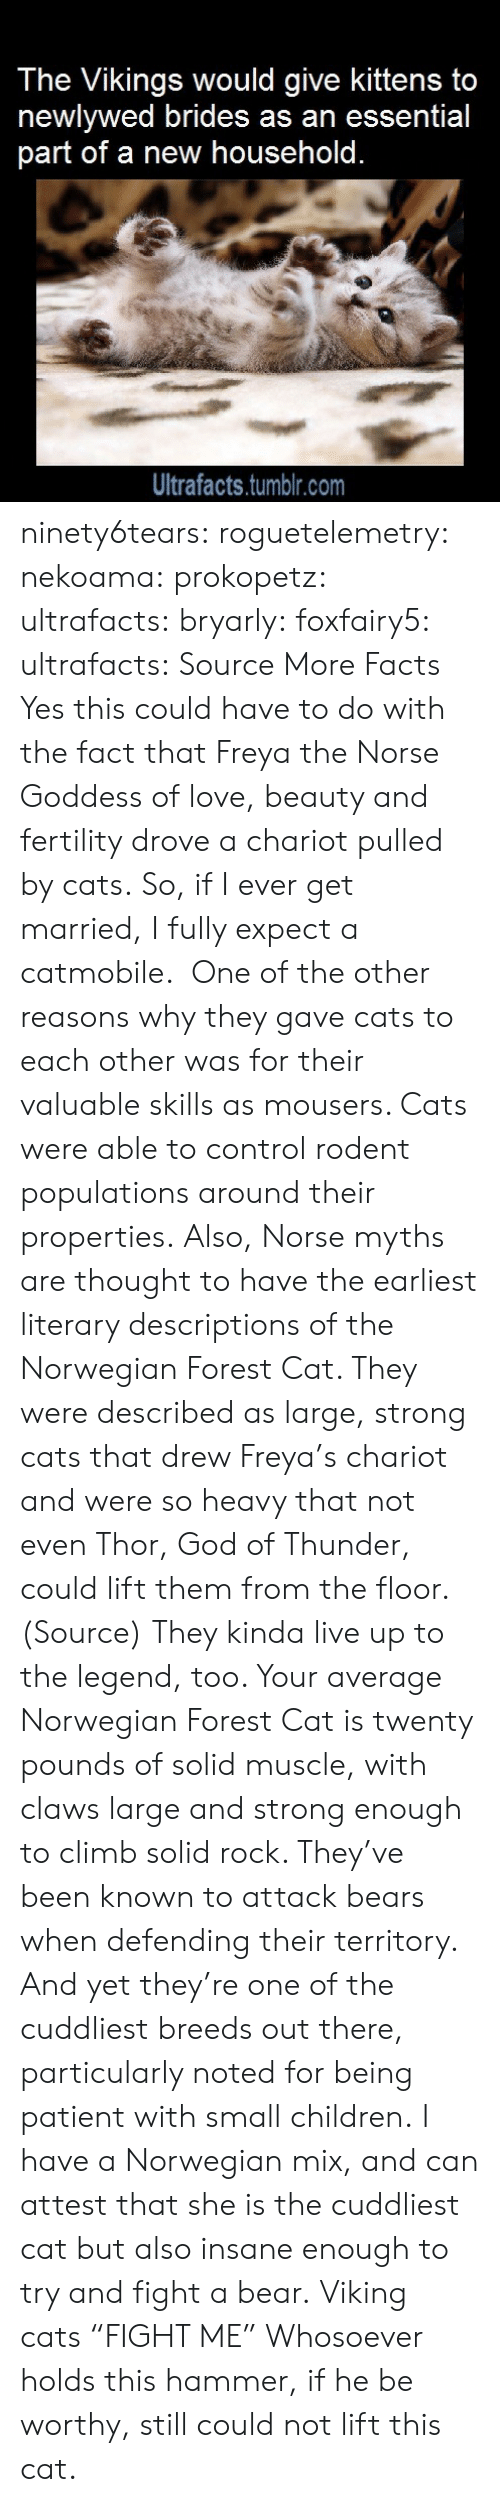 "myths: The Vikings would give kittens to  newlywed brides as an essential  part of a new household.  Ultrafacts.tumblr.com ninety6tears:  roguetelemetry:   nekoama:   prokopetz:   ultrafacts:  bryarly:  foxfairy5:  ultrafacts:  Source More Facts  Yes this could have to do with the fact that Freya the Norse Goddess of love, beauty and fertility drove a chariot pulled by cats.  So, if I ever get married, I fully expect a catmobile.   One of the other reasons why they gave cats to each other was for their valuable skills as mousers. Cats were able to control rodent populations around their properties. Also, Norse myths are thought to have the earliest literary descriptions of the Norwegian Forest Cat. They were described as large, strong cats that drew Freya's chariot and were so heavy that not even Thor, God of Thunder, could lift them from the floor. (Source)  They kinda live up to the legend, too. Your average Norwegian Forest Cat is twenty pounds of solid muscle, with claws large and strong enough to climb solid rock. They've been known to attack bears when defending their territory. And yet they're one of the cuddliest breeds out there, particularly noted for being patient with small children.   I have a Norwegian mix, and can attest that she is the cuddliest cat but also insane enough to try and fight a bear.   Viking cats ""FIGHT ME""   Whosoever holds this hammer, if he be worthy, still could not lift this cat."